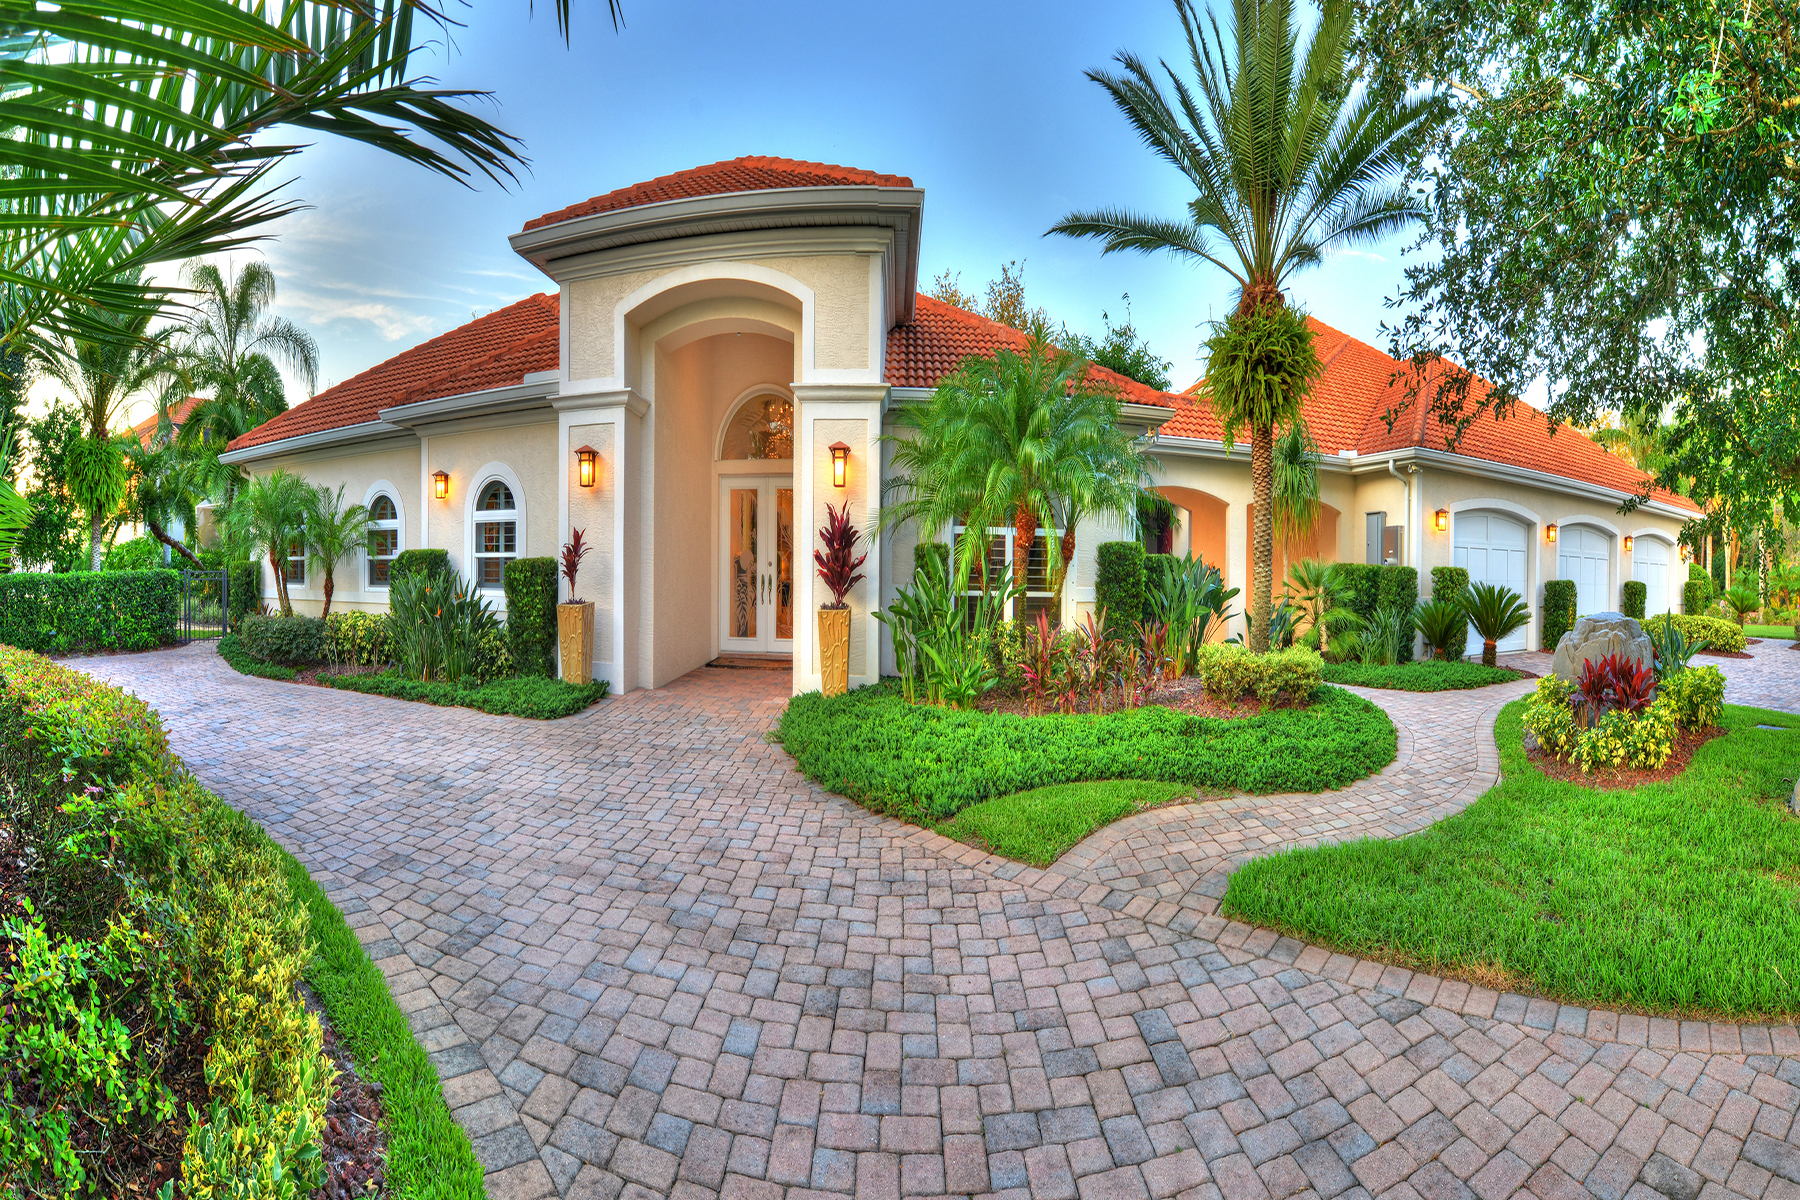 Villa per Vendita alle ore SPRUCE CREEK AND THE BEACHES 1705 Spruce Creek Way Port Orange, Florida, 32128 Stati Uniti